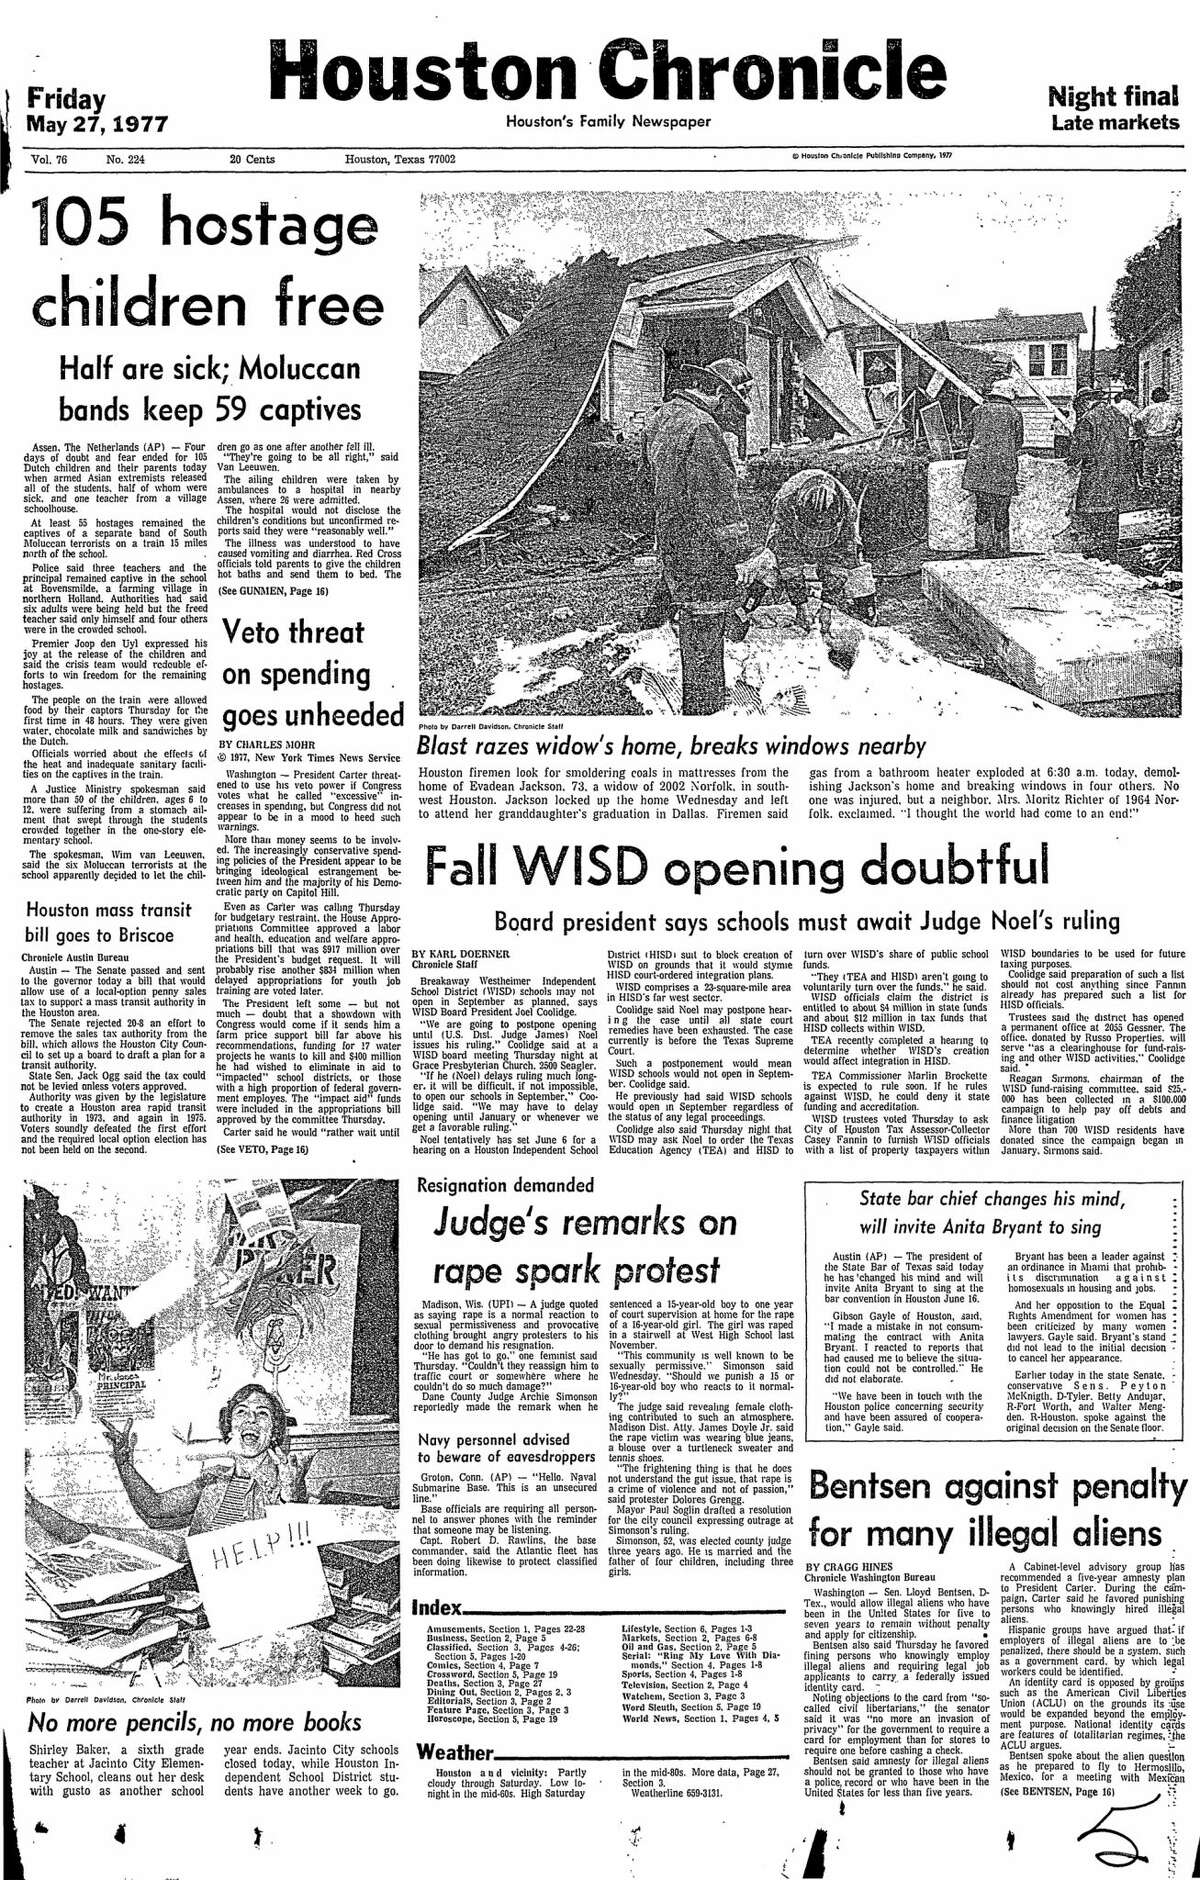 Houston Chronicle front page for May 27, 1977.